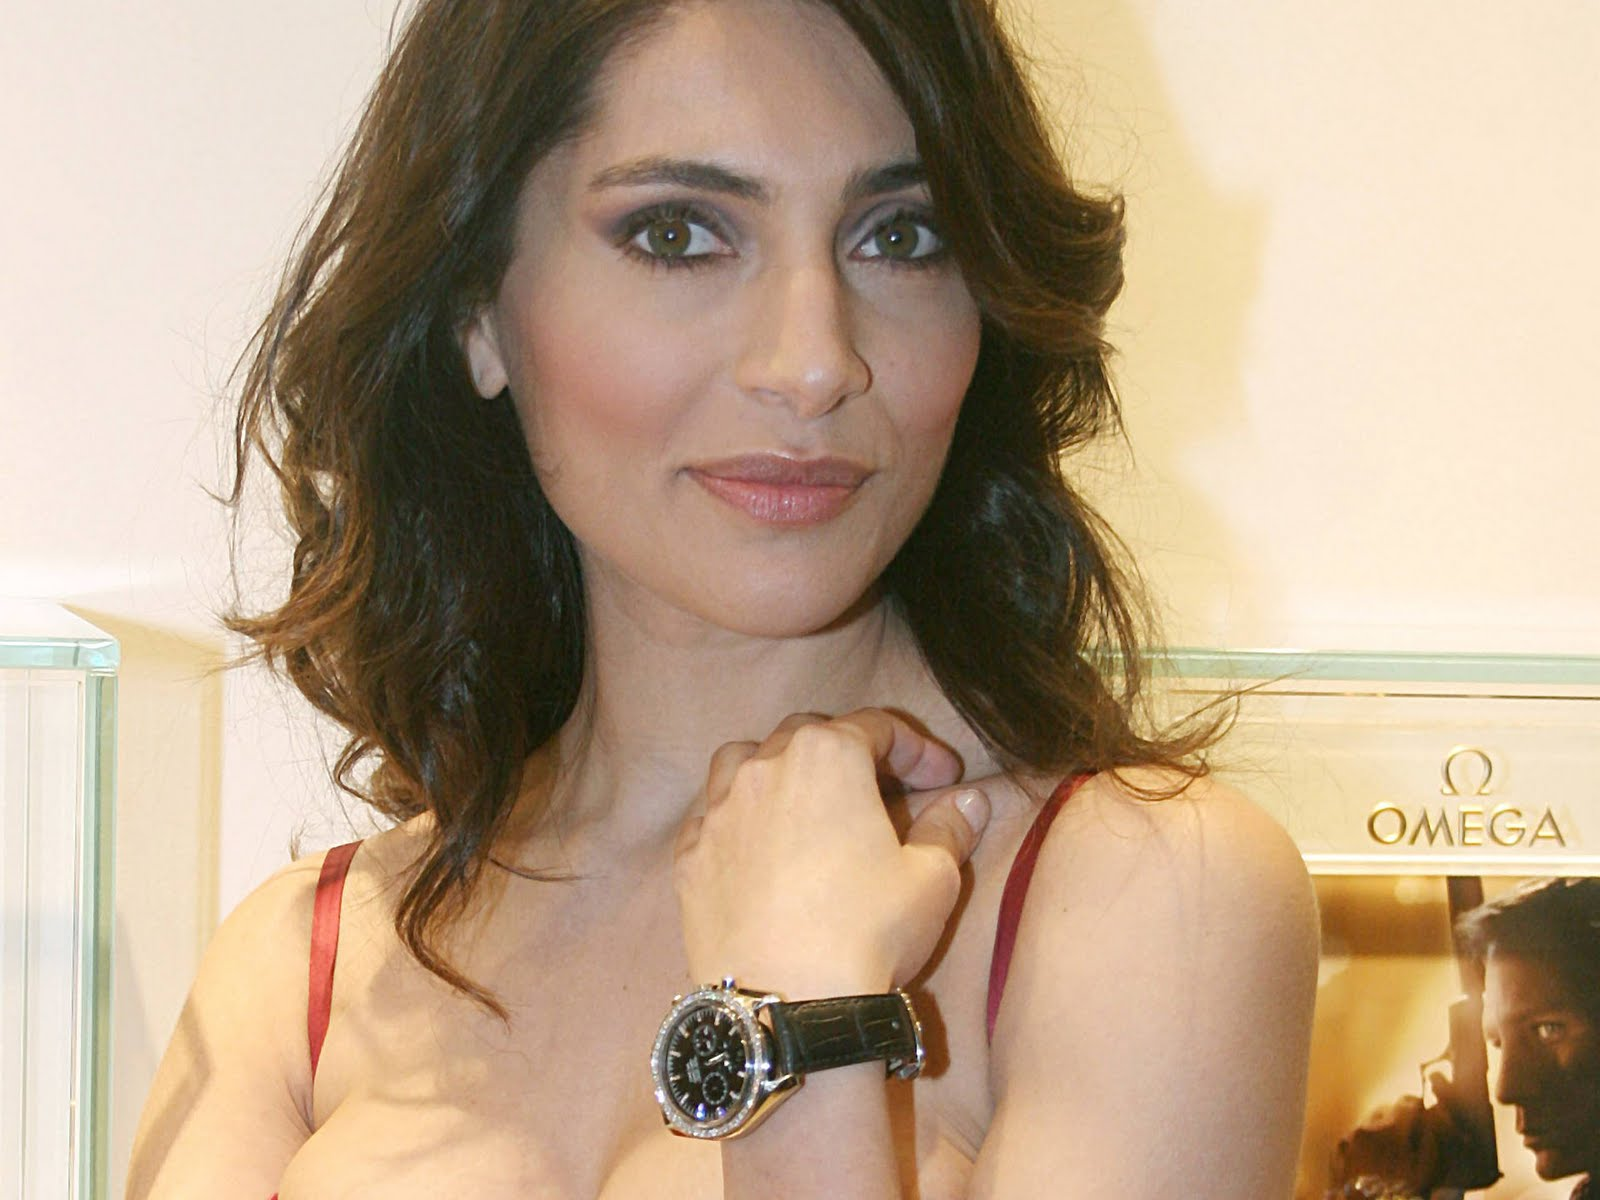 hot caterina murino girls pictures top models hot